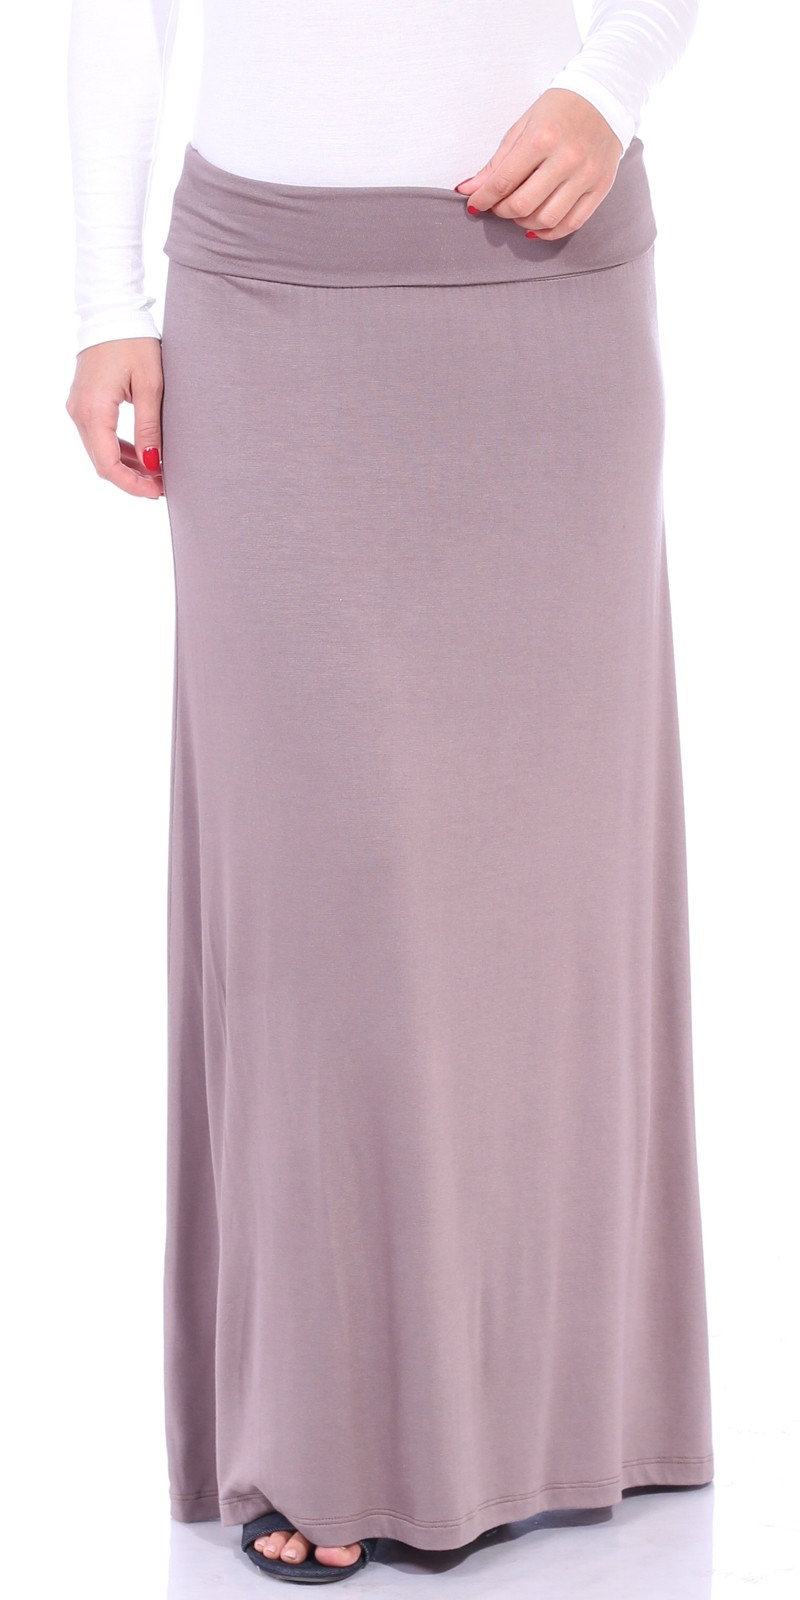 Comfortable Fold-Over Maxi Skirt - Made in USA - Toffee